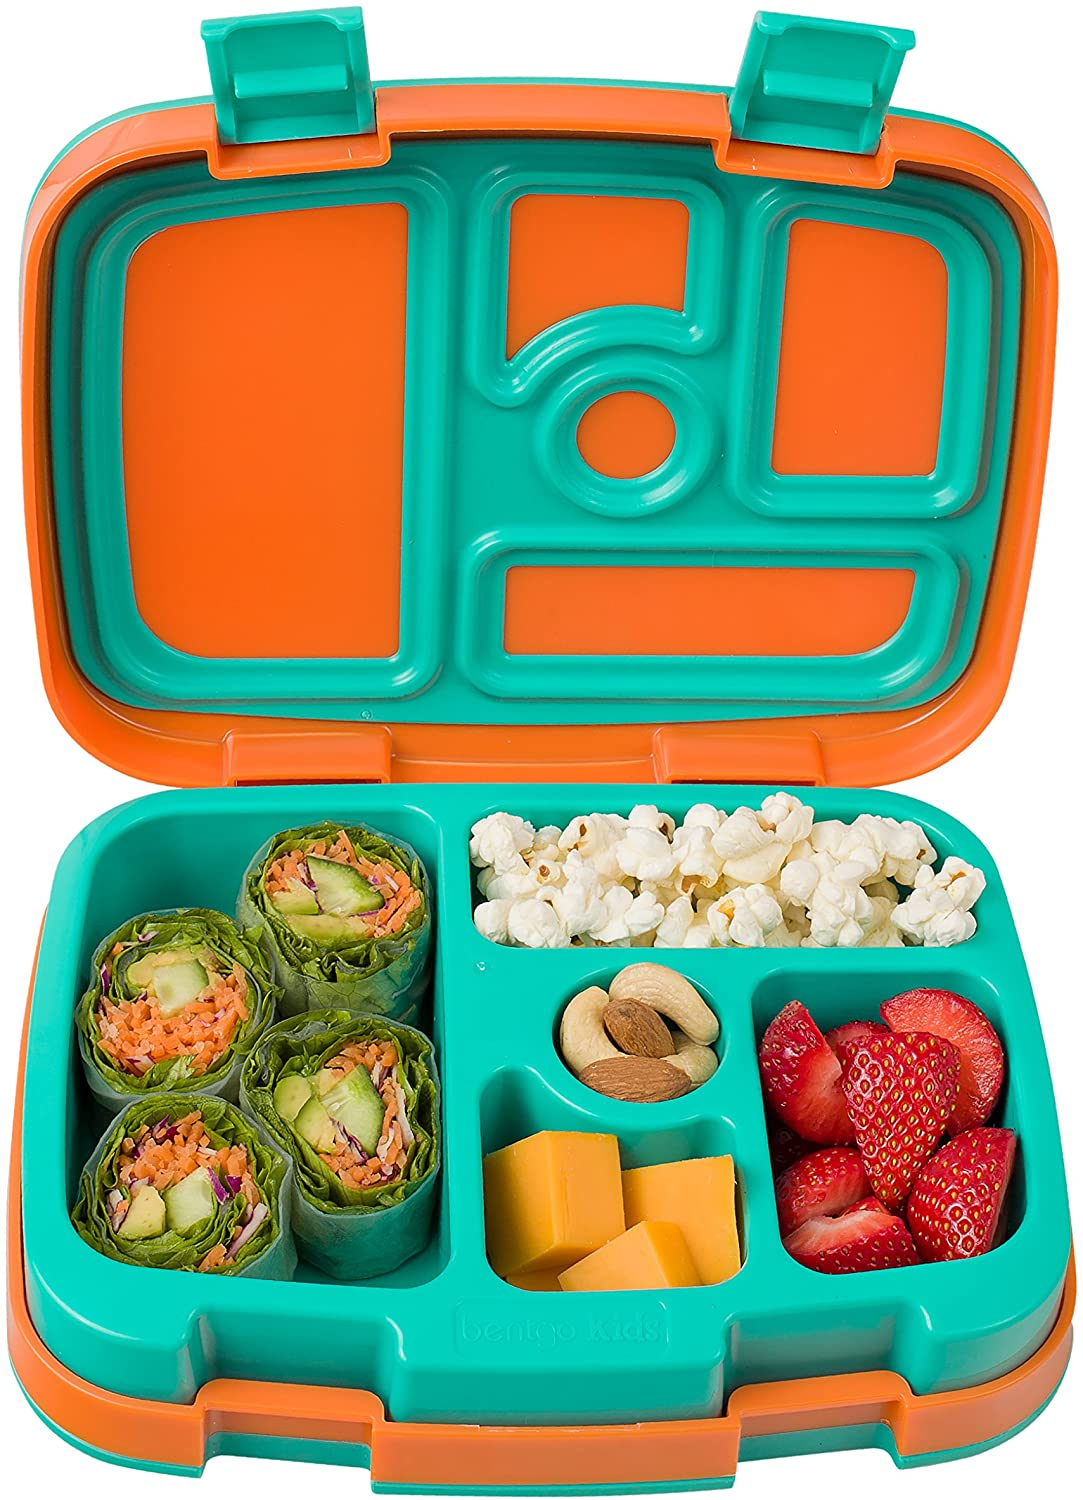 Review of Bentgo Kids Brights Leak-Proof, 5-Compartment Bento-Style Kids Lunch Box